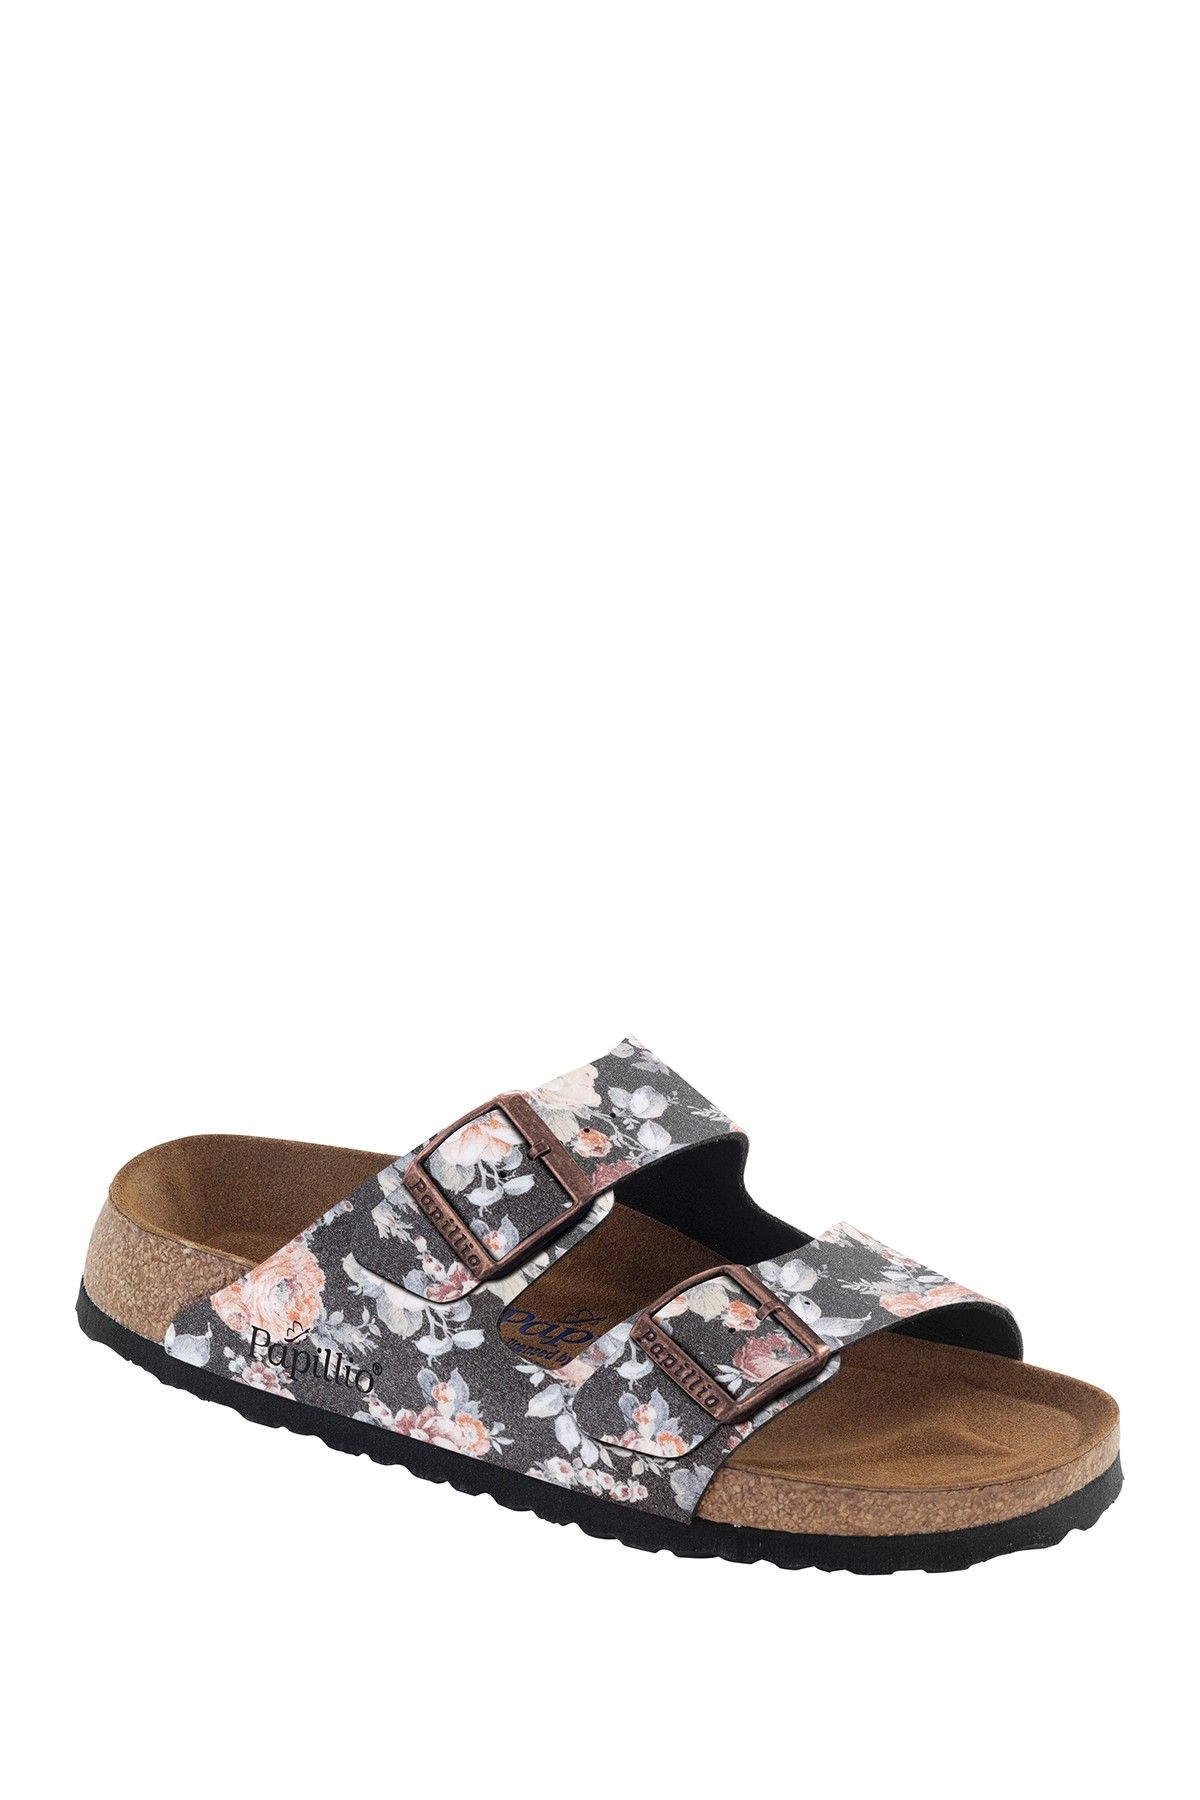 Arizona Fl Print Slip On Sandal By Birkenstock Hautelook